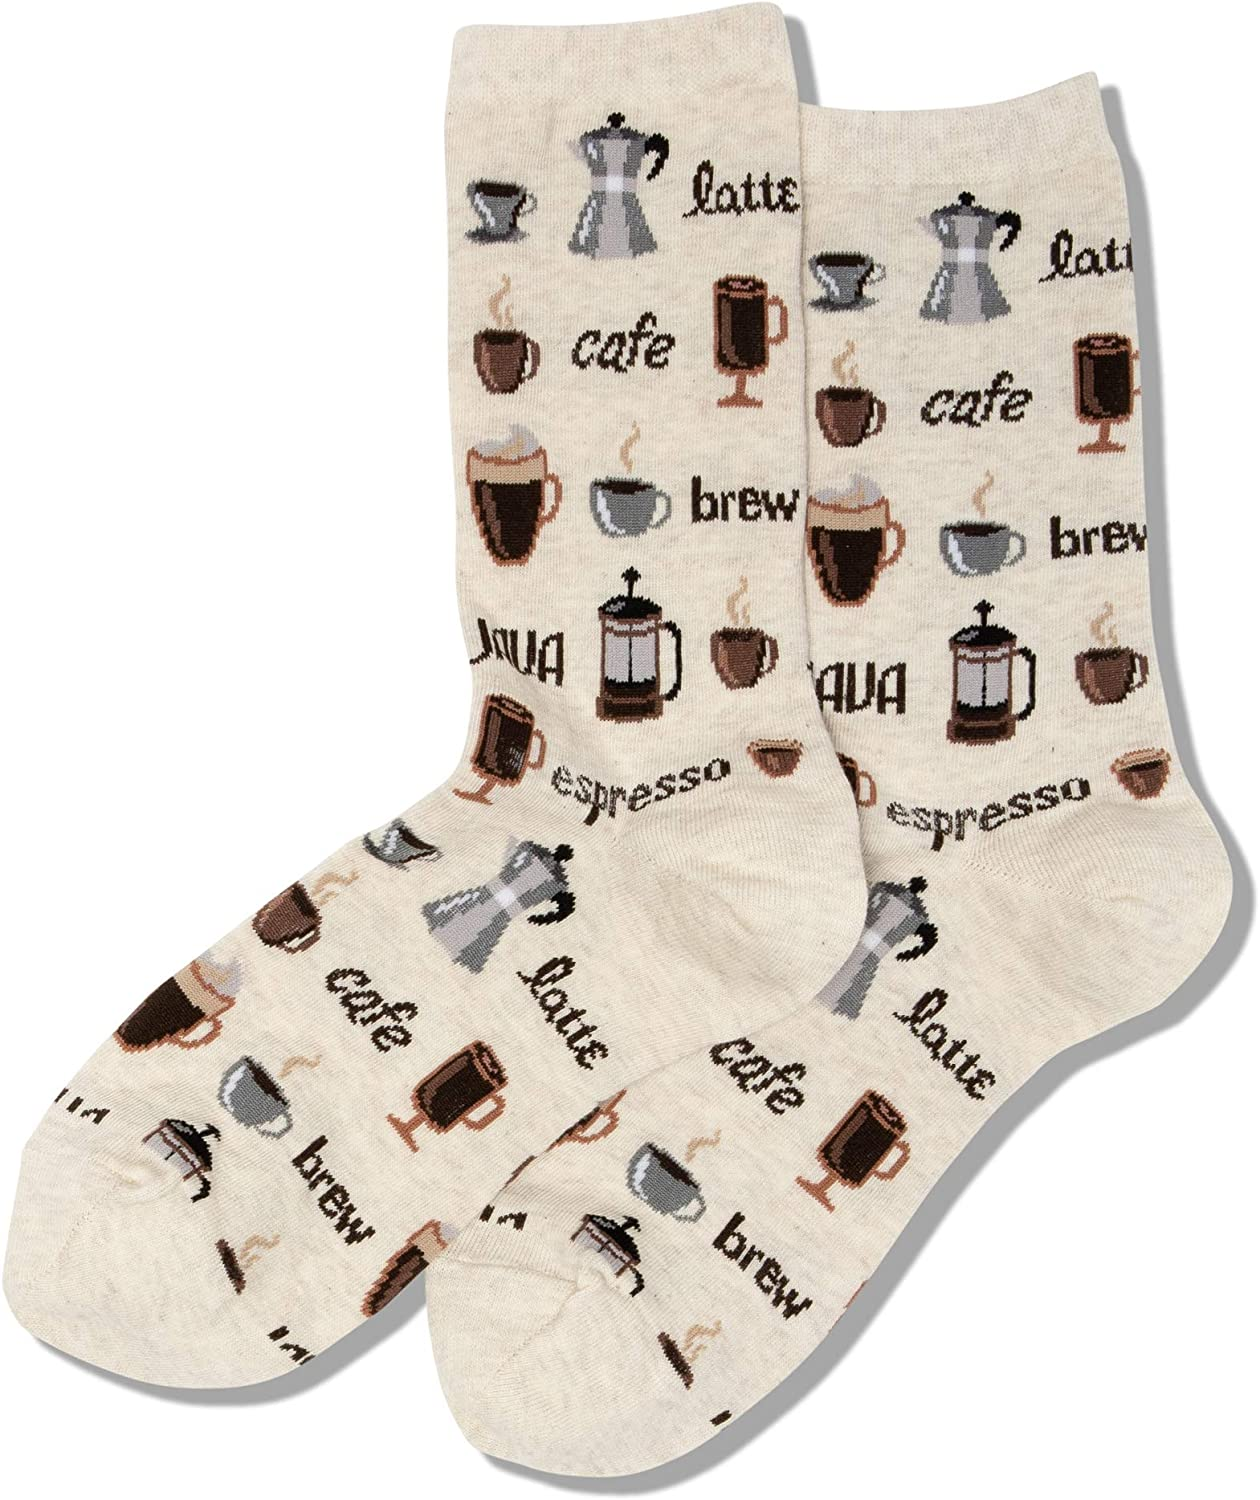 Hot Sox Women's Food and Drink Novelty Casual Crew Socks